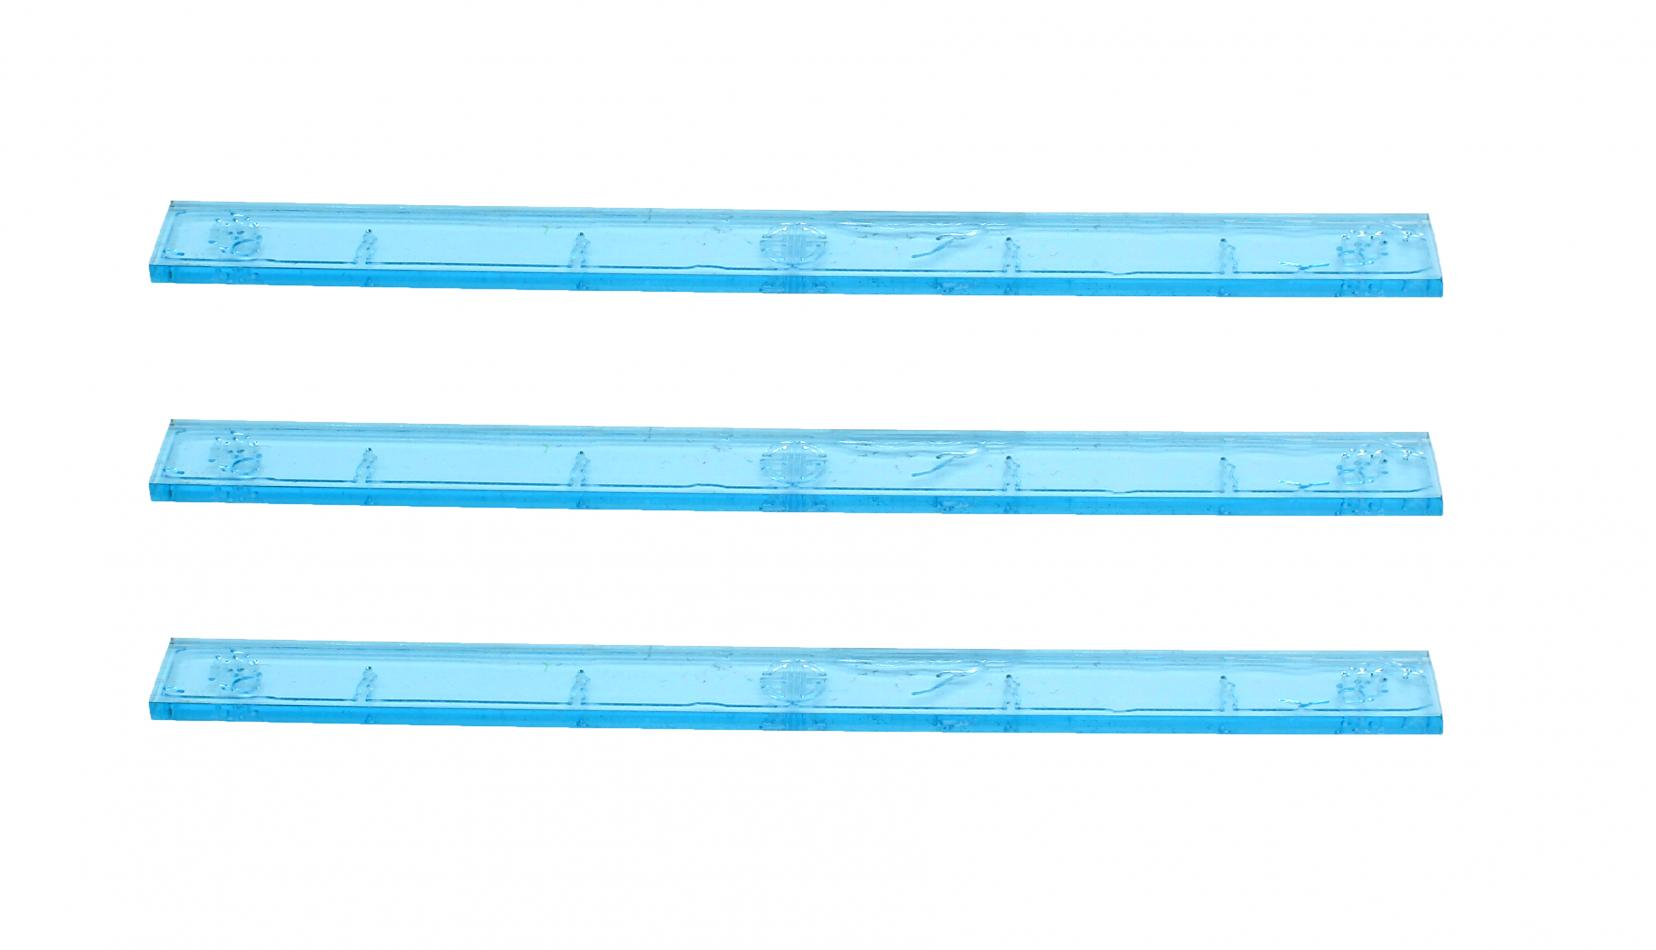 Element Essentials 6 Inch Acrylic Measuring Stick (Pack of 3)